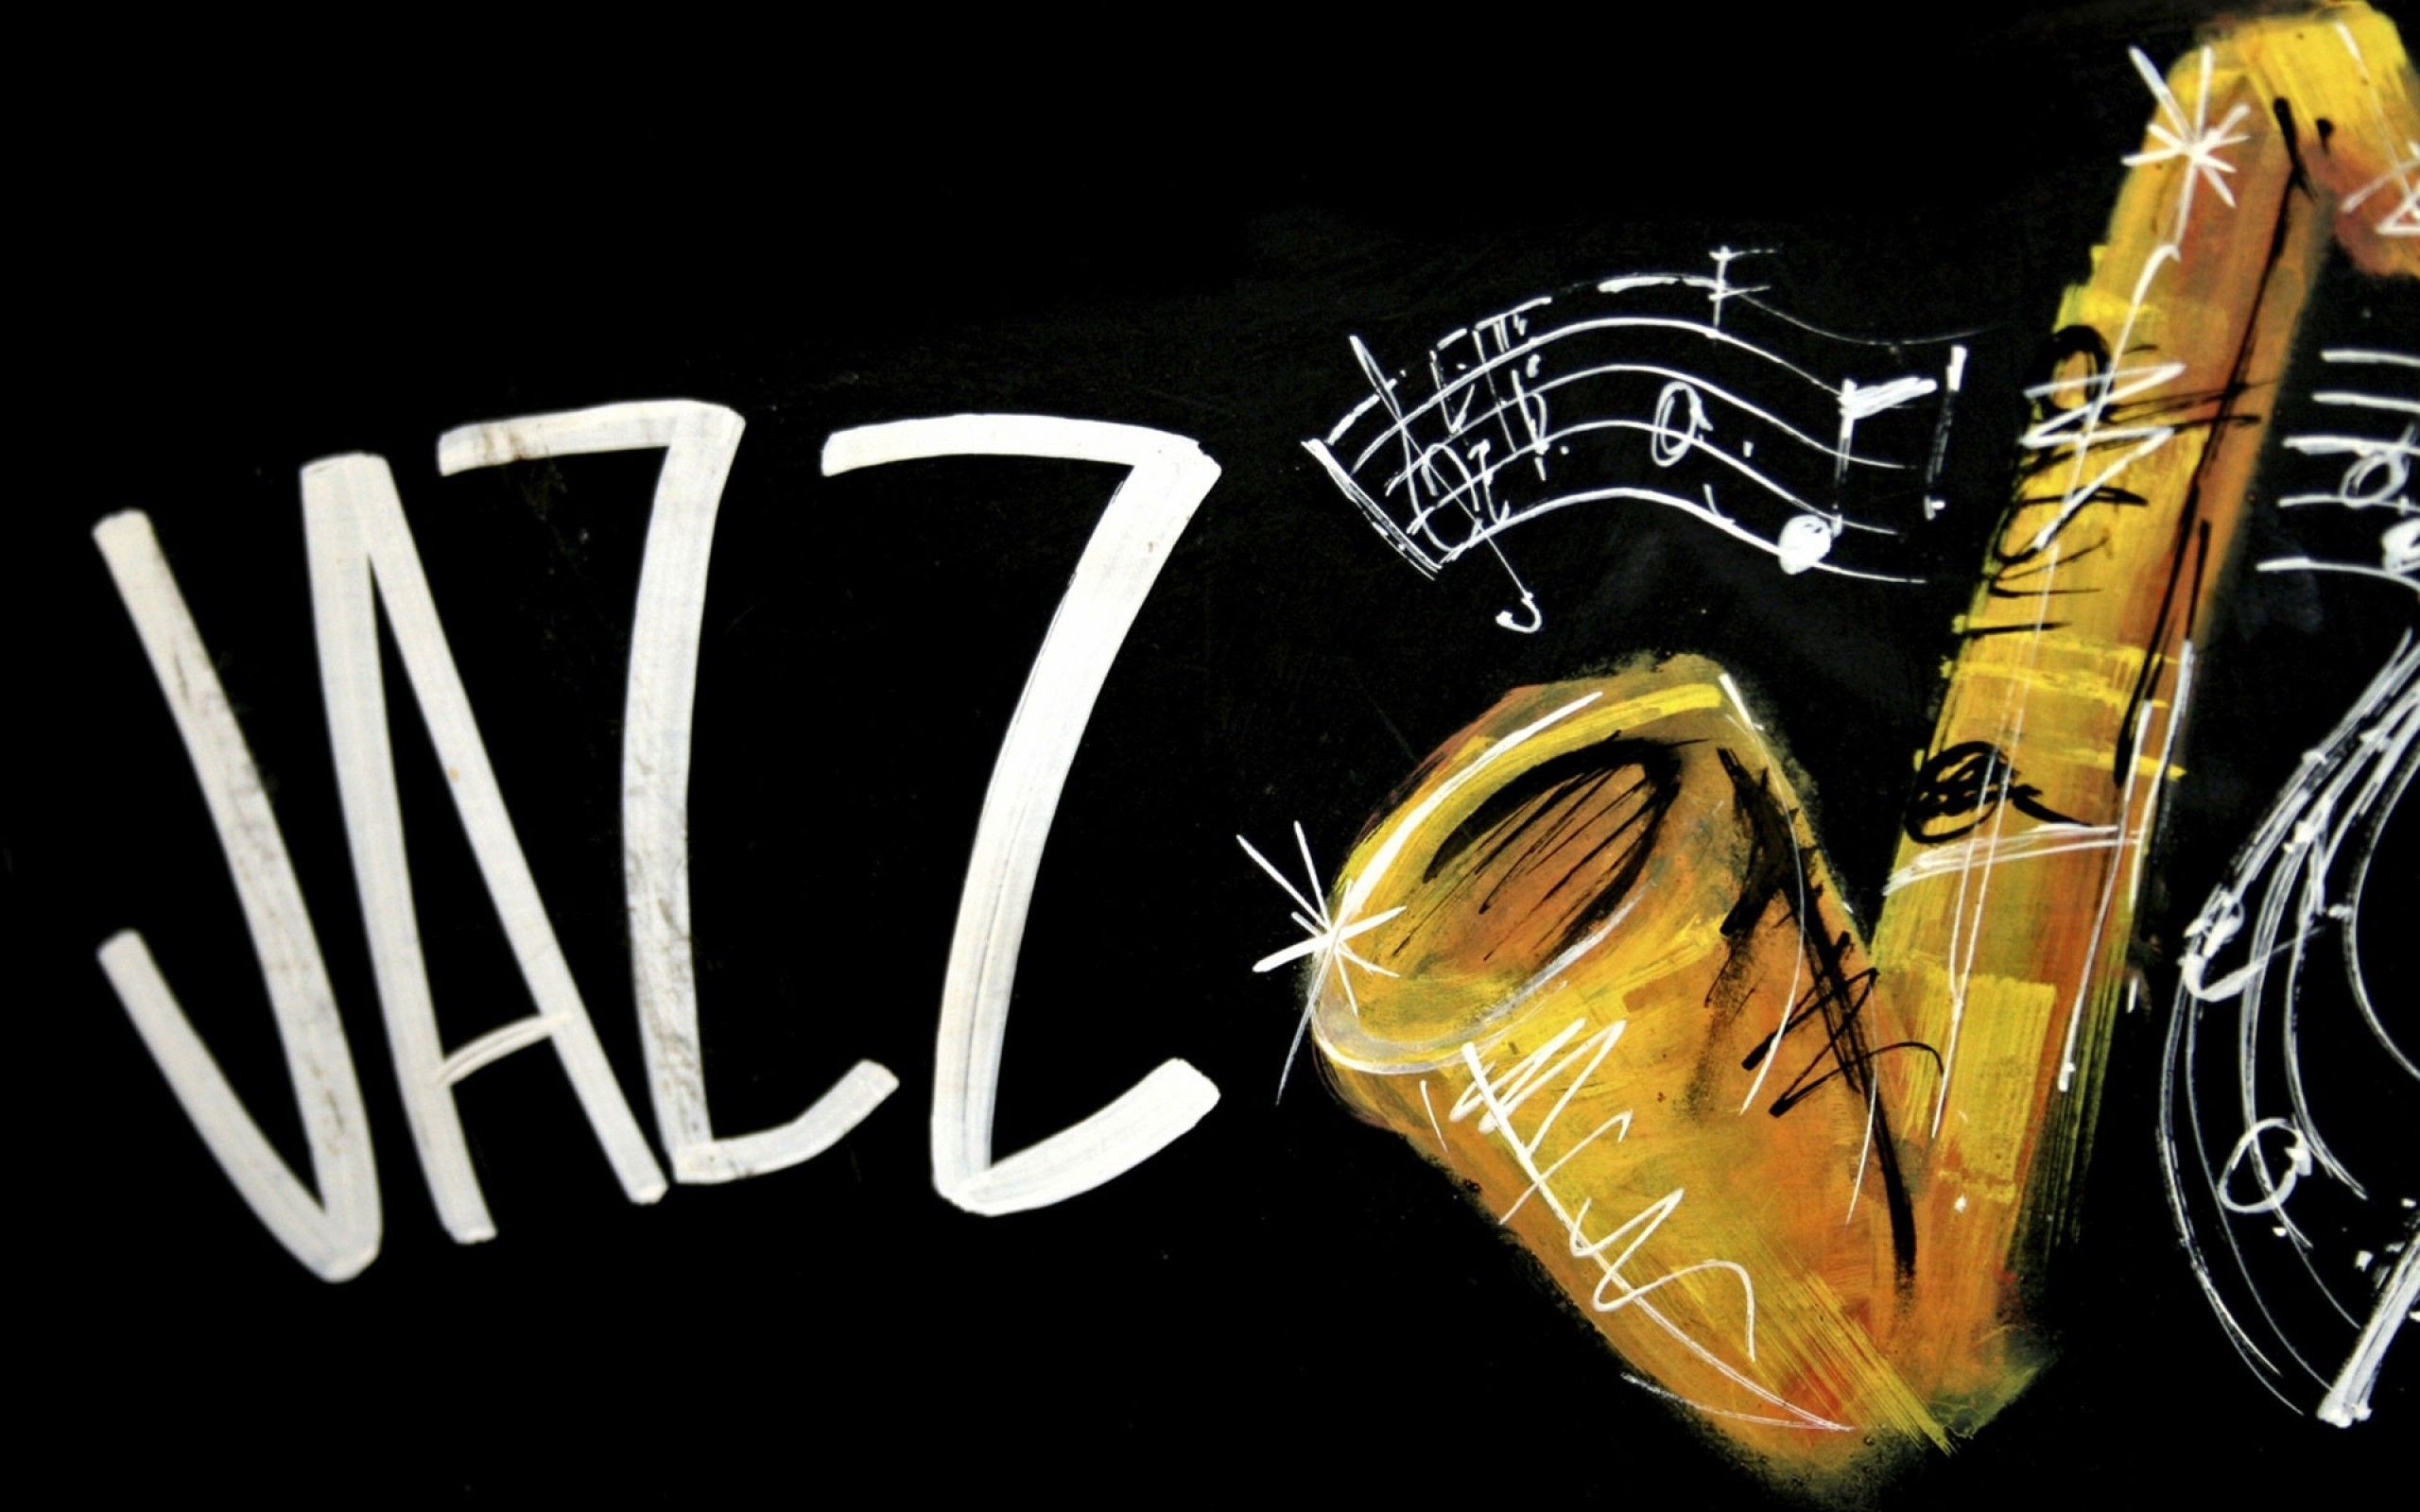 2560x1600 Jazz Pictures For Desktop Wallpaper 2560 x 1600 px 1.2 MB cannonball  trumpet hd widescreen music